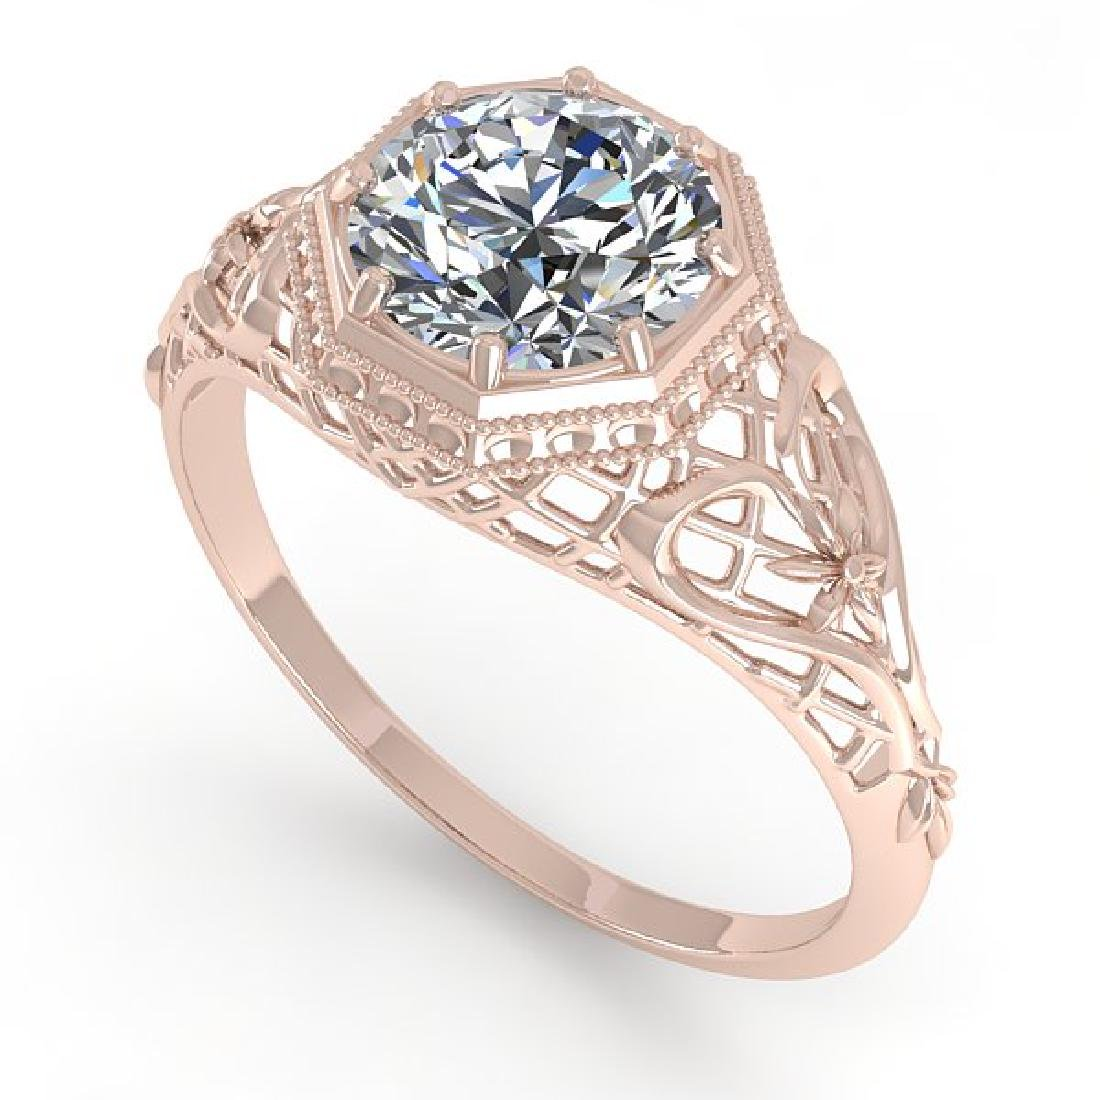 1.50 CTW VS/SI Diamond Solitaire Ring 14K Rose Gold - 2